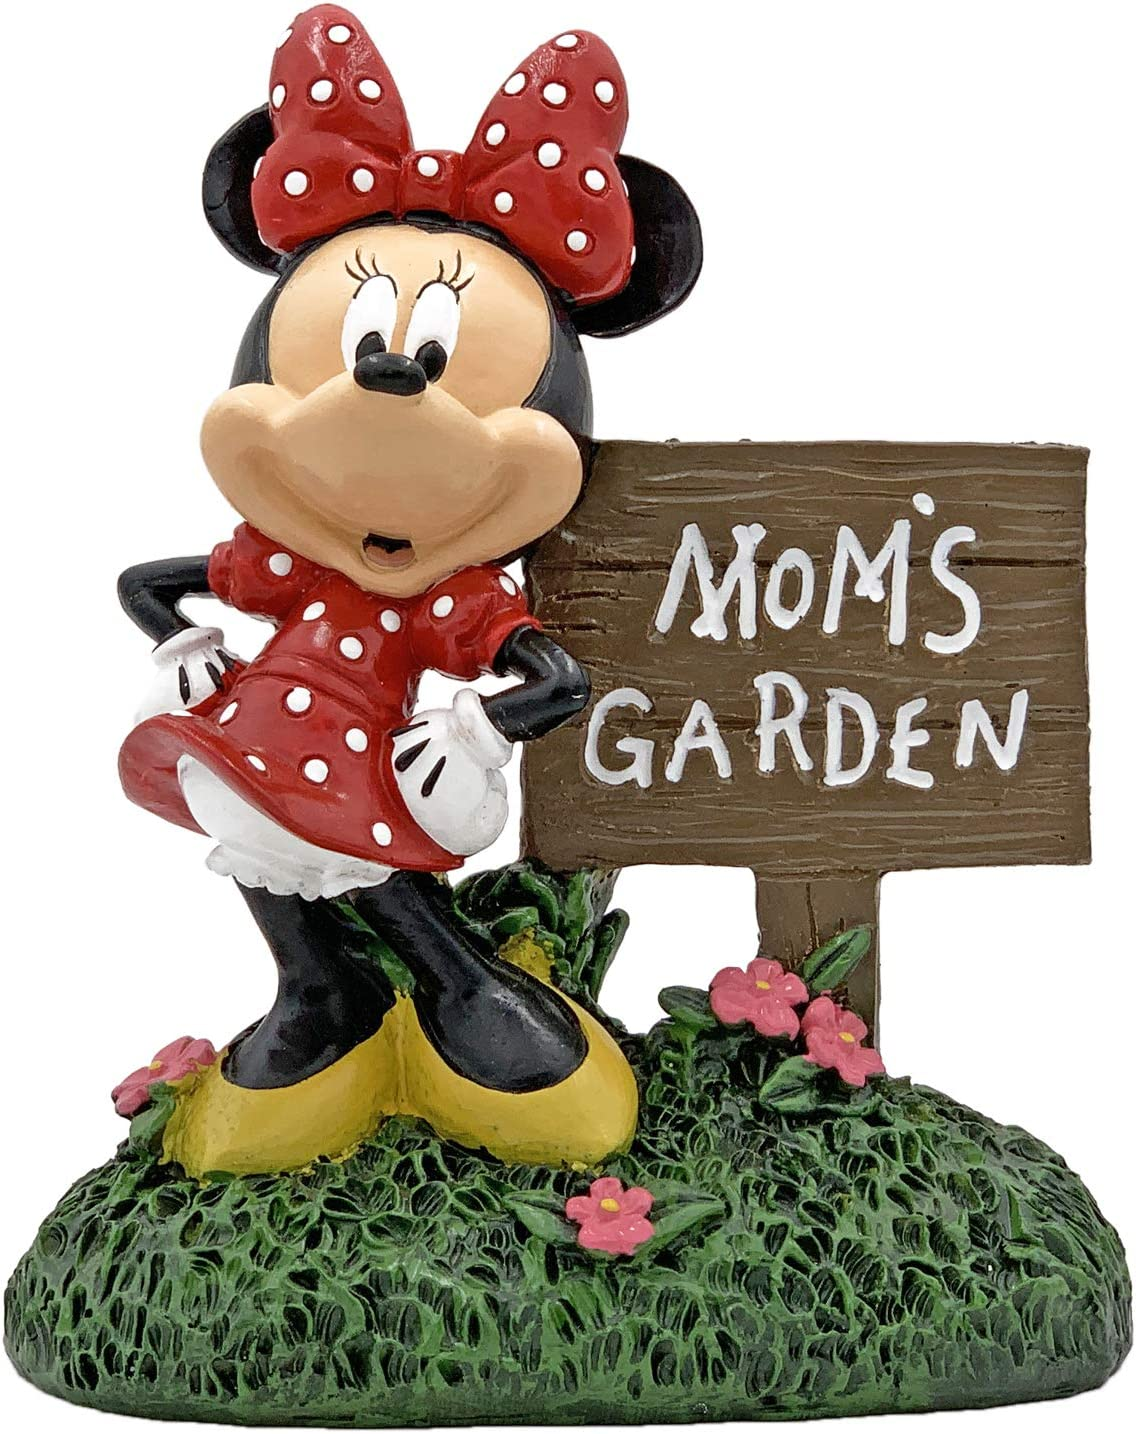 The Galway Company Minnie Mouse Mom's Garden Statue, Hand Painted, Made of Durable Stone Resin, Standing at 7 inches Tall and 5 inches Wide. Official Disney Licensed Product.